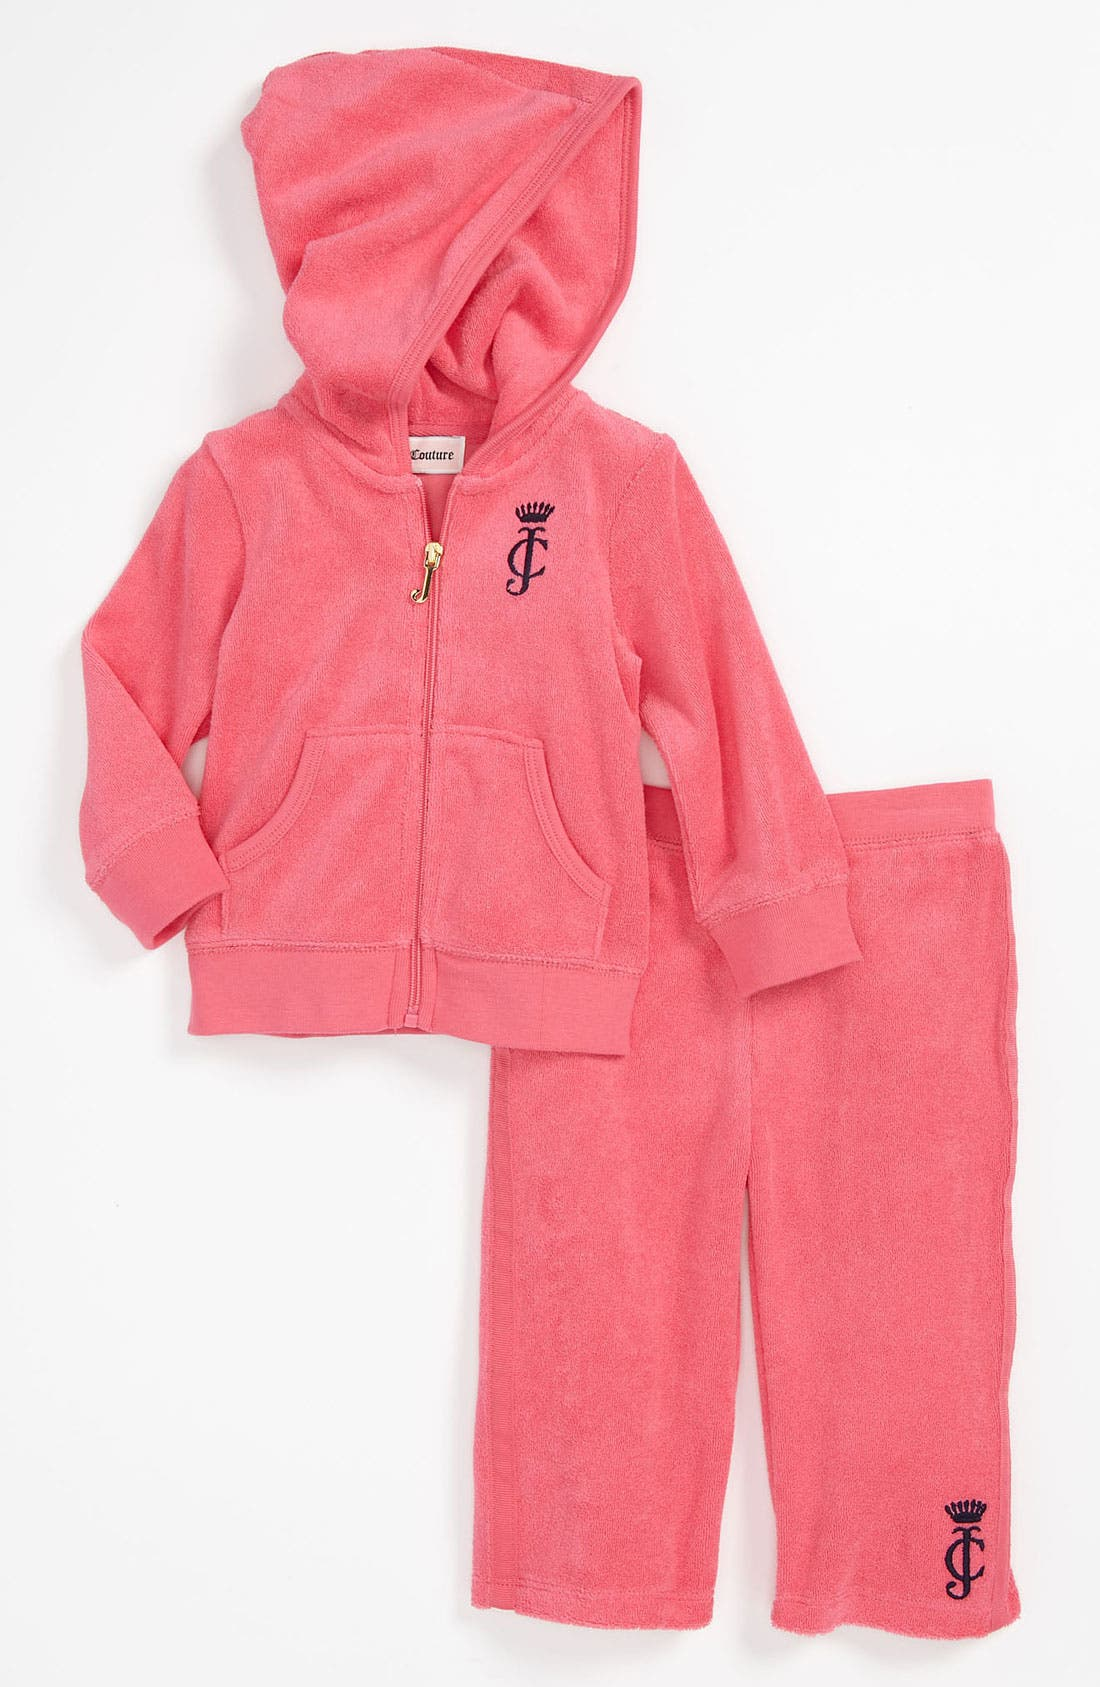 Main Image - Juicy Couture Terry Cloth Hoodie & Pants (Baby)